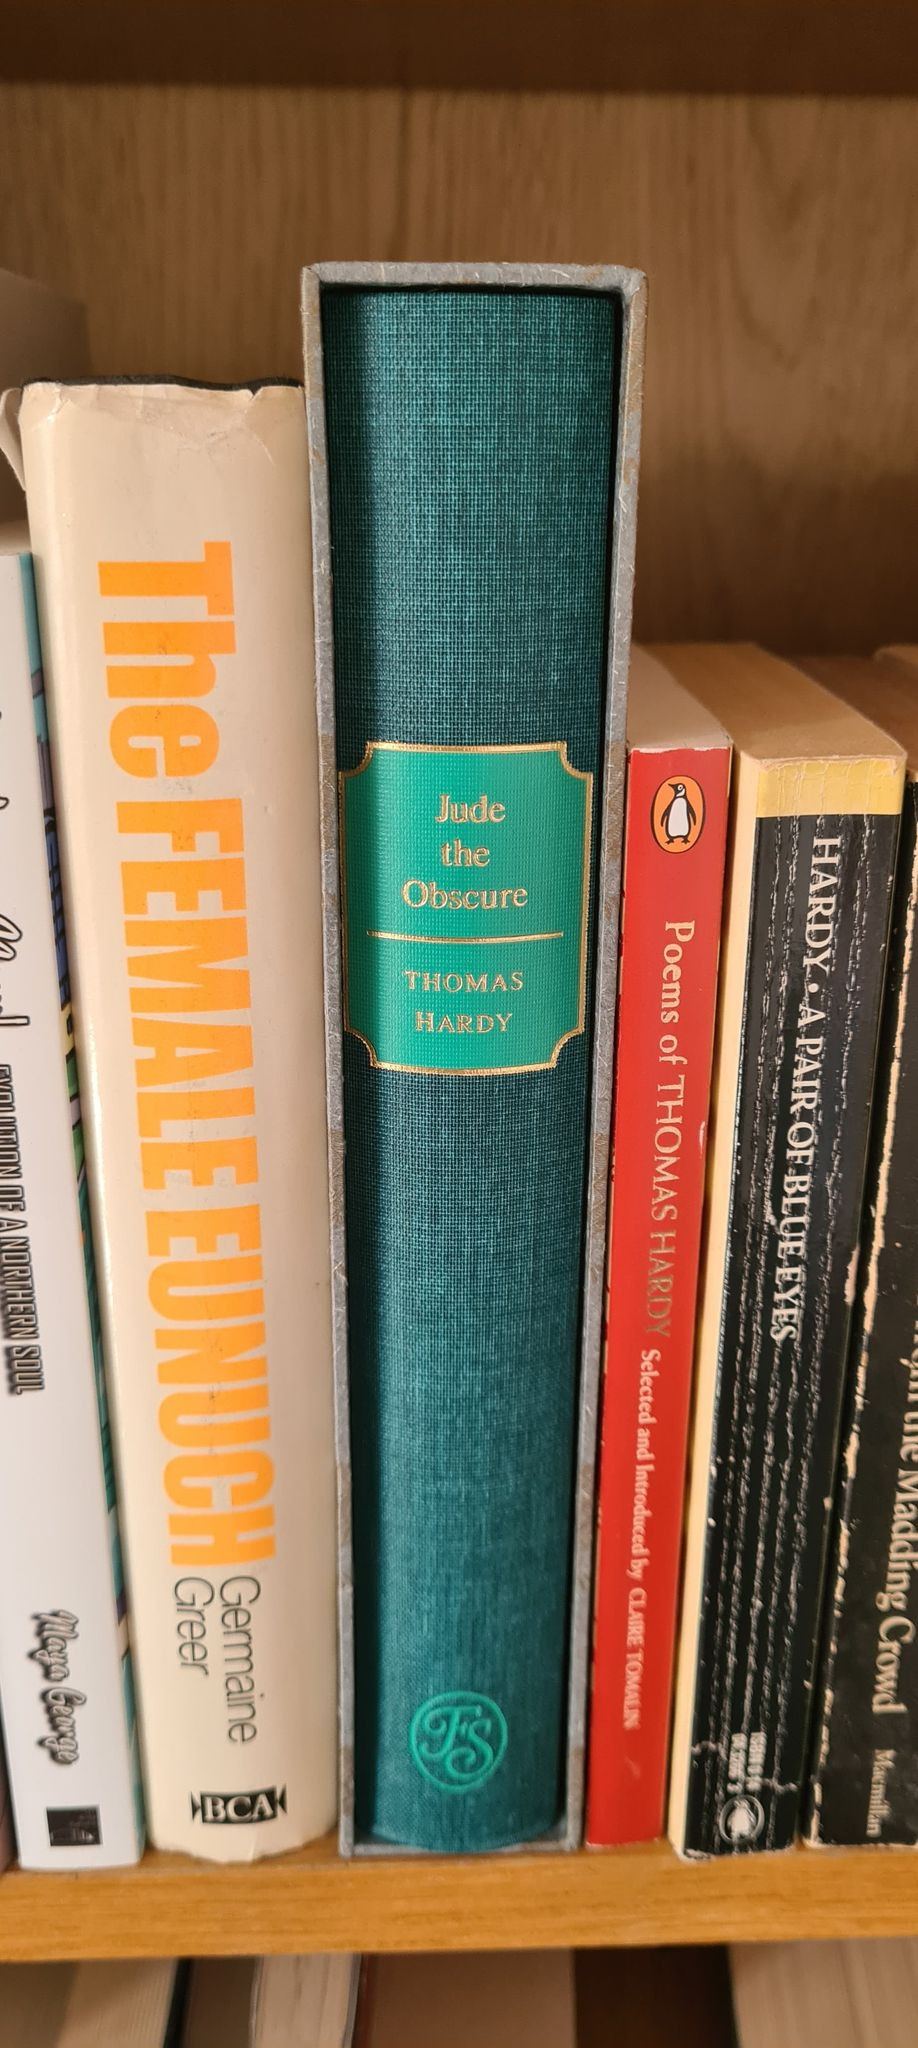 Thomas Hardy's 'Jude the Obscure'